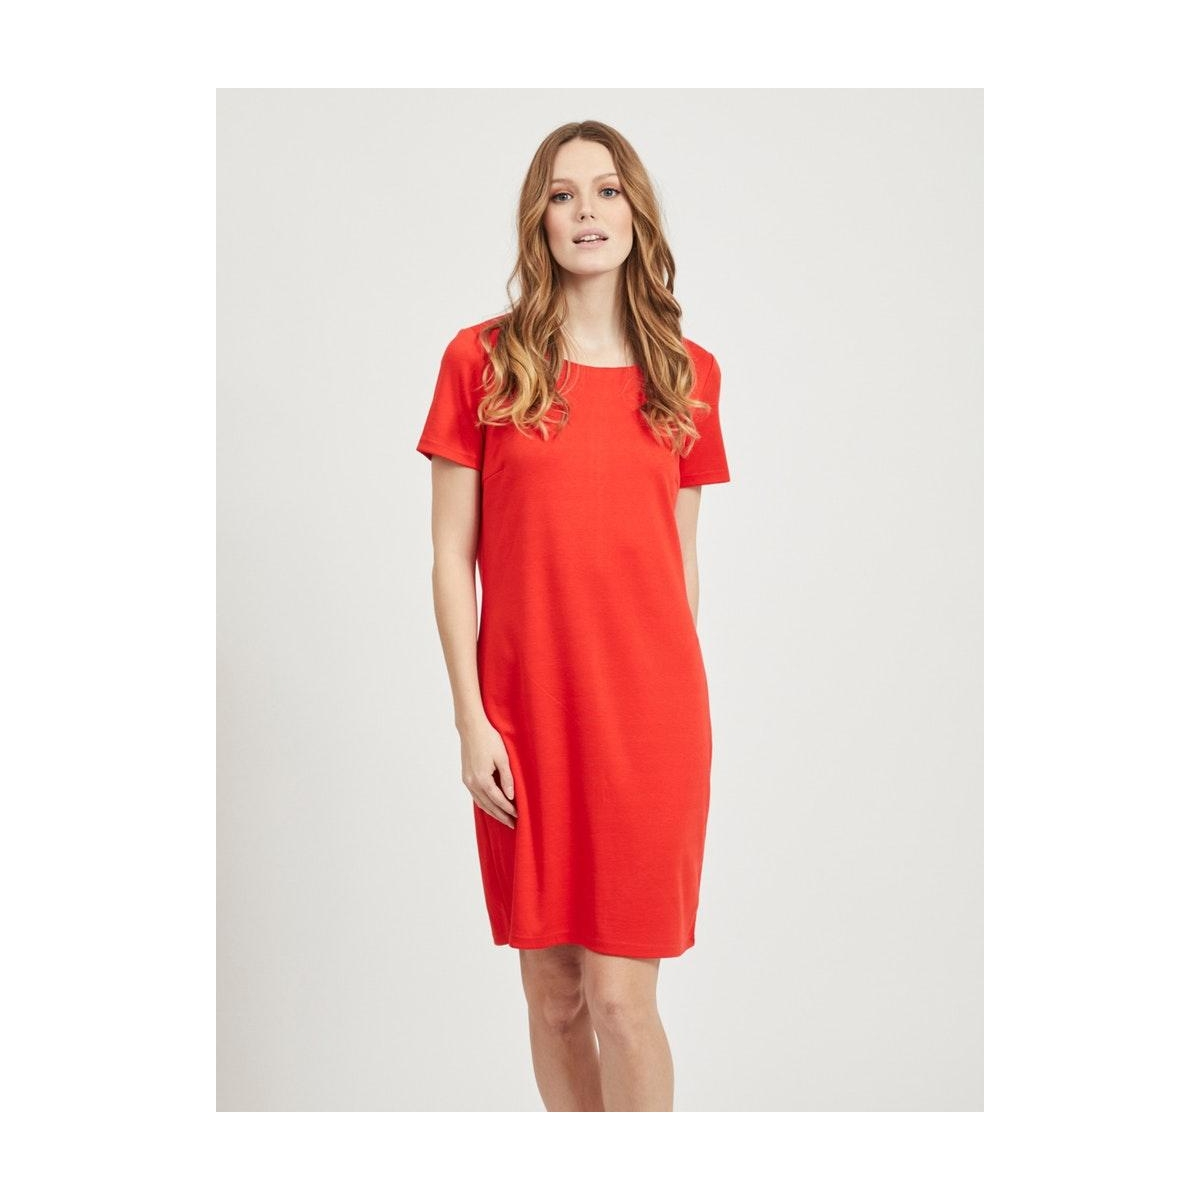 vitinny new s/s dress - fav 14044396 vila jurk flame scarlet